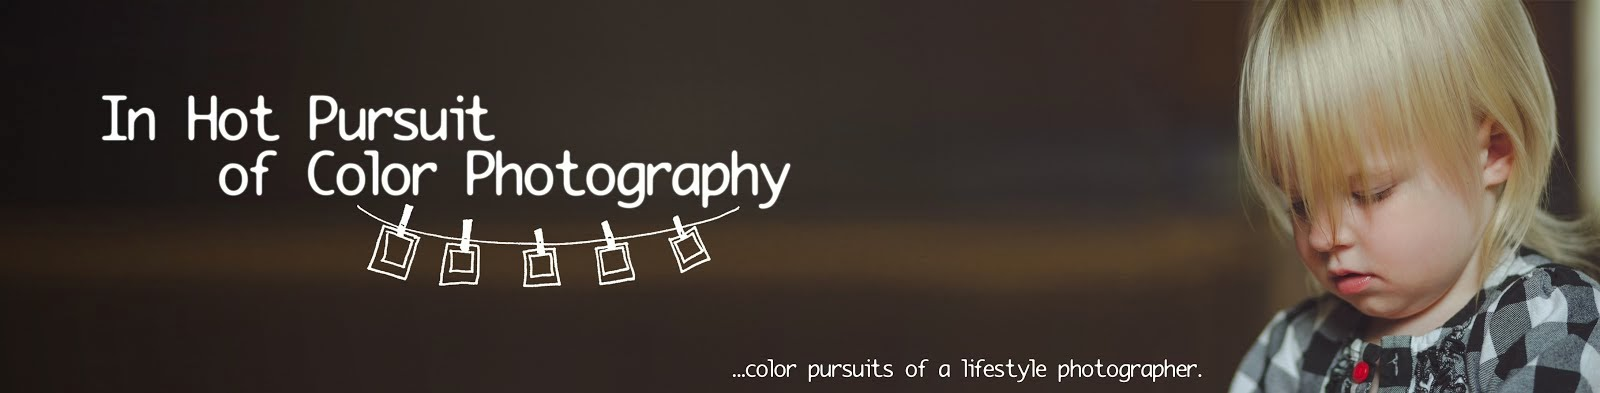 ihpoc Photography - In Hot Pursuit of Color